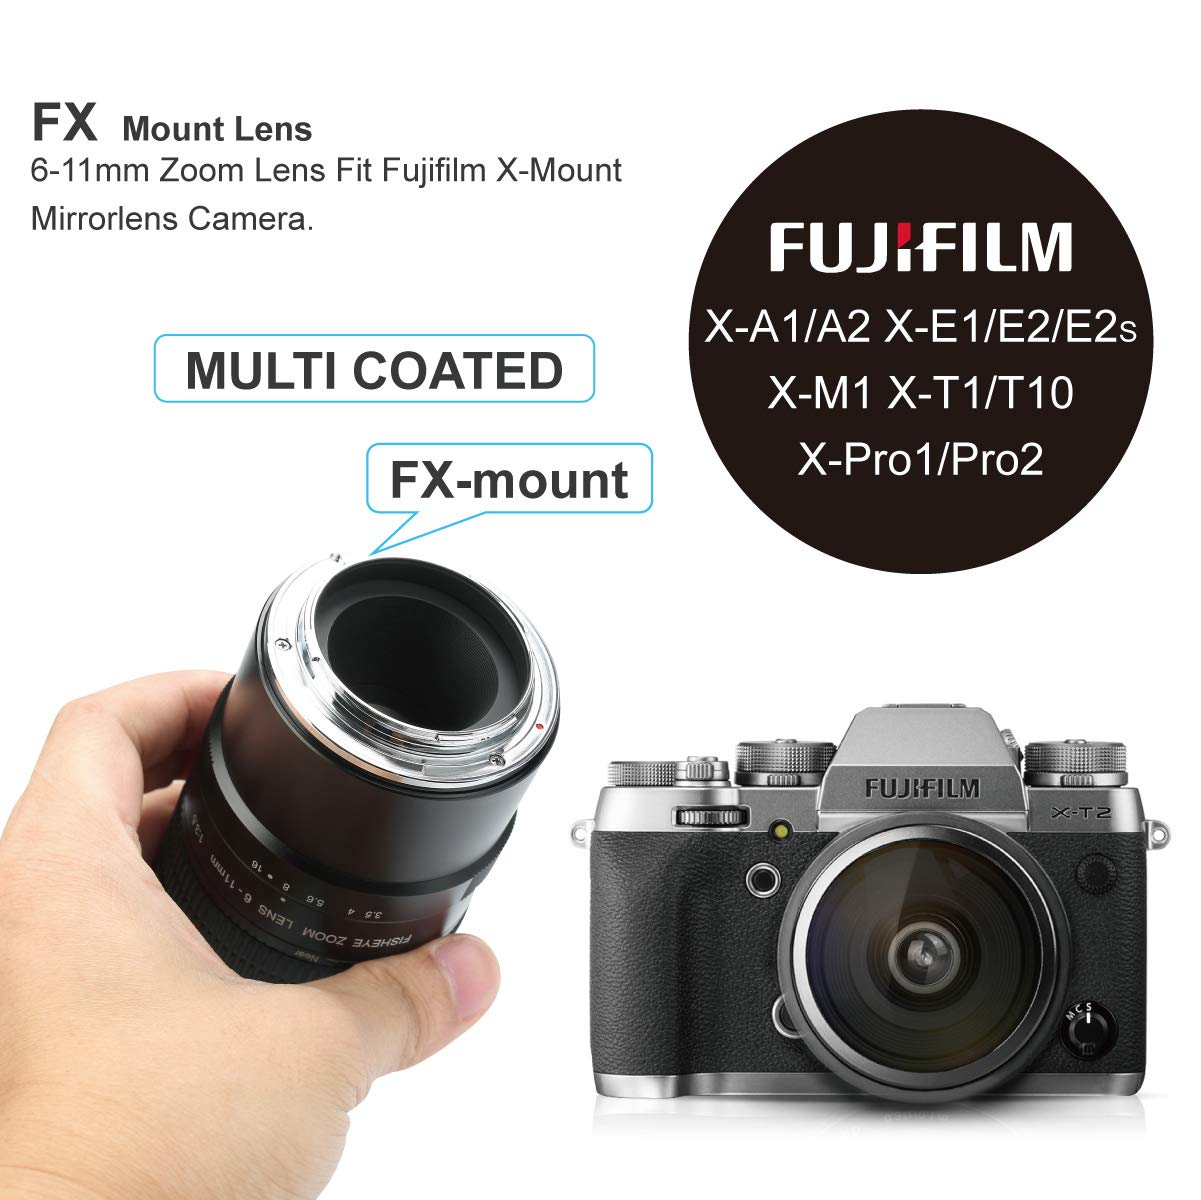 Meike 6-11mm F/3.5 Wide Angle APS-C Manual Focus Fisheye Zoom Lens